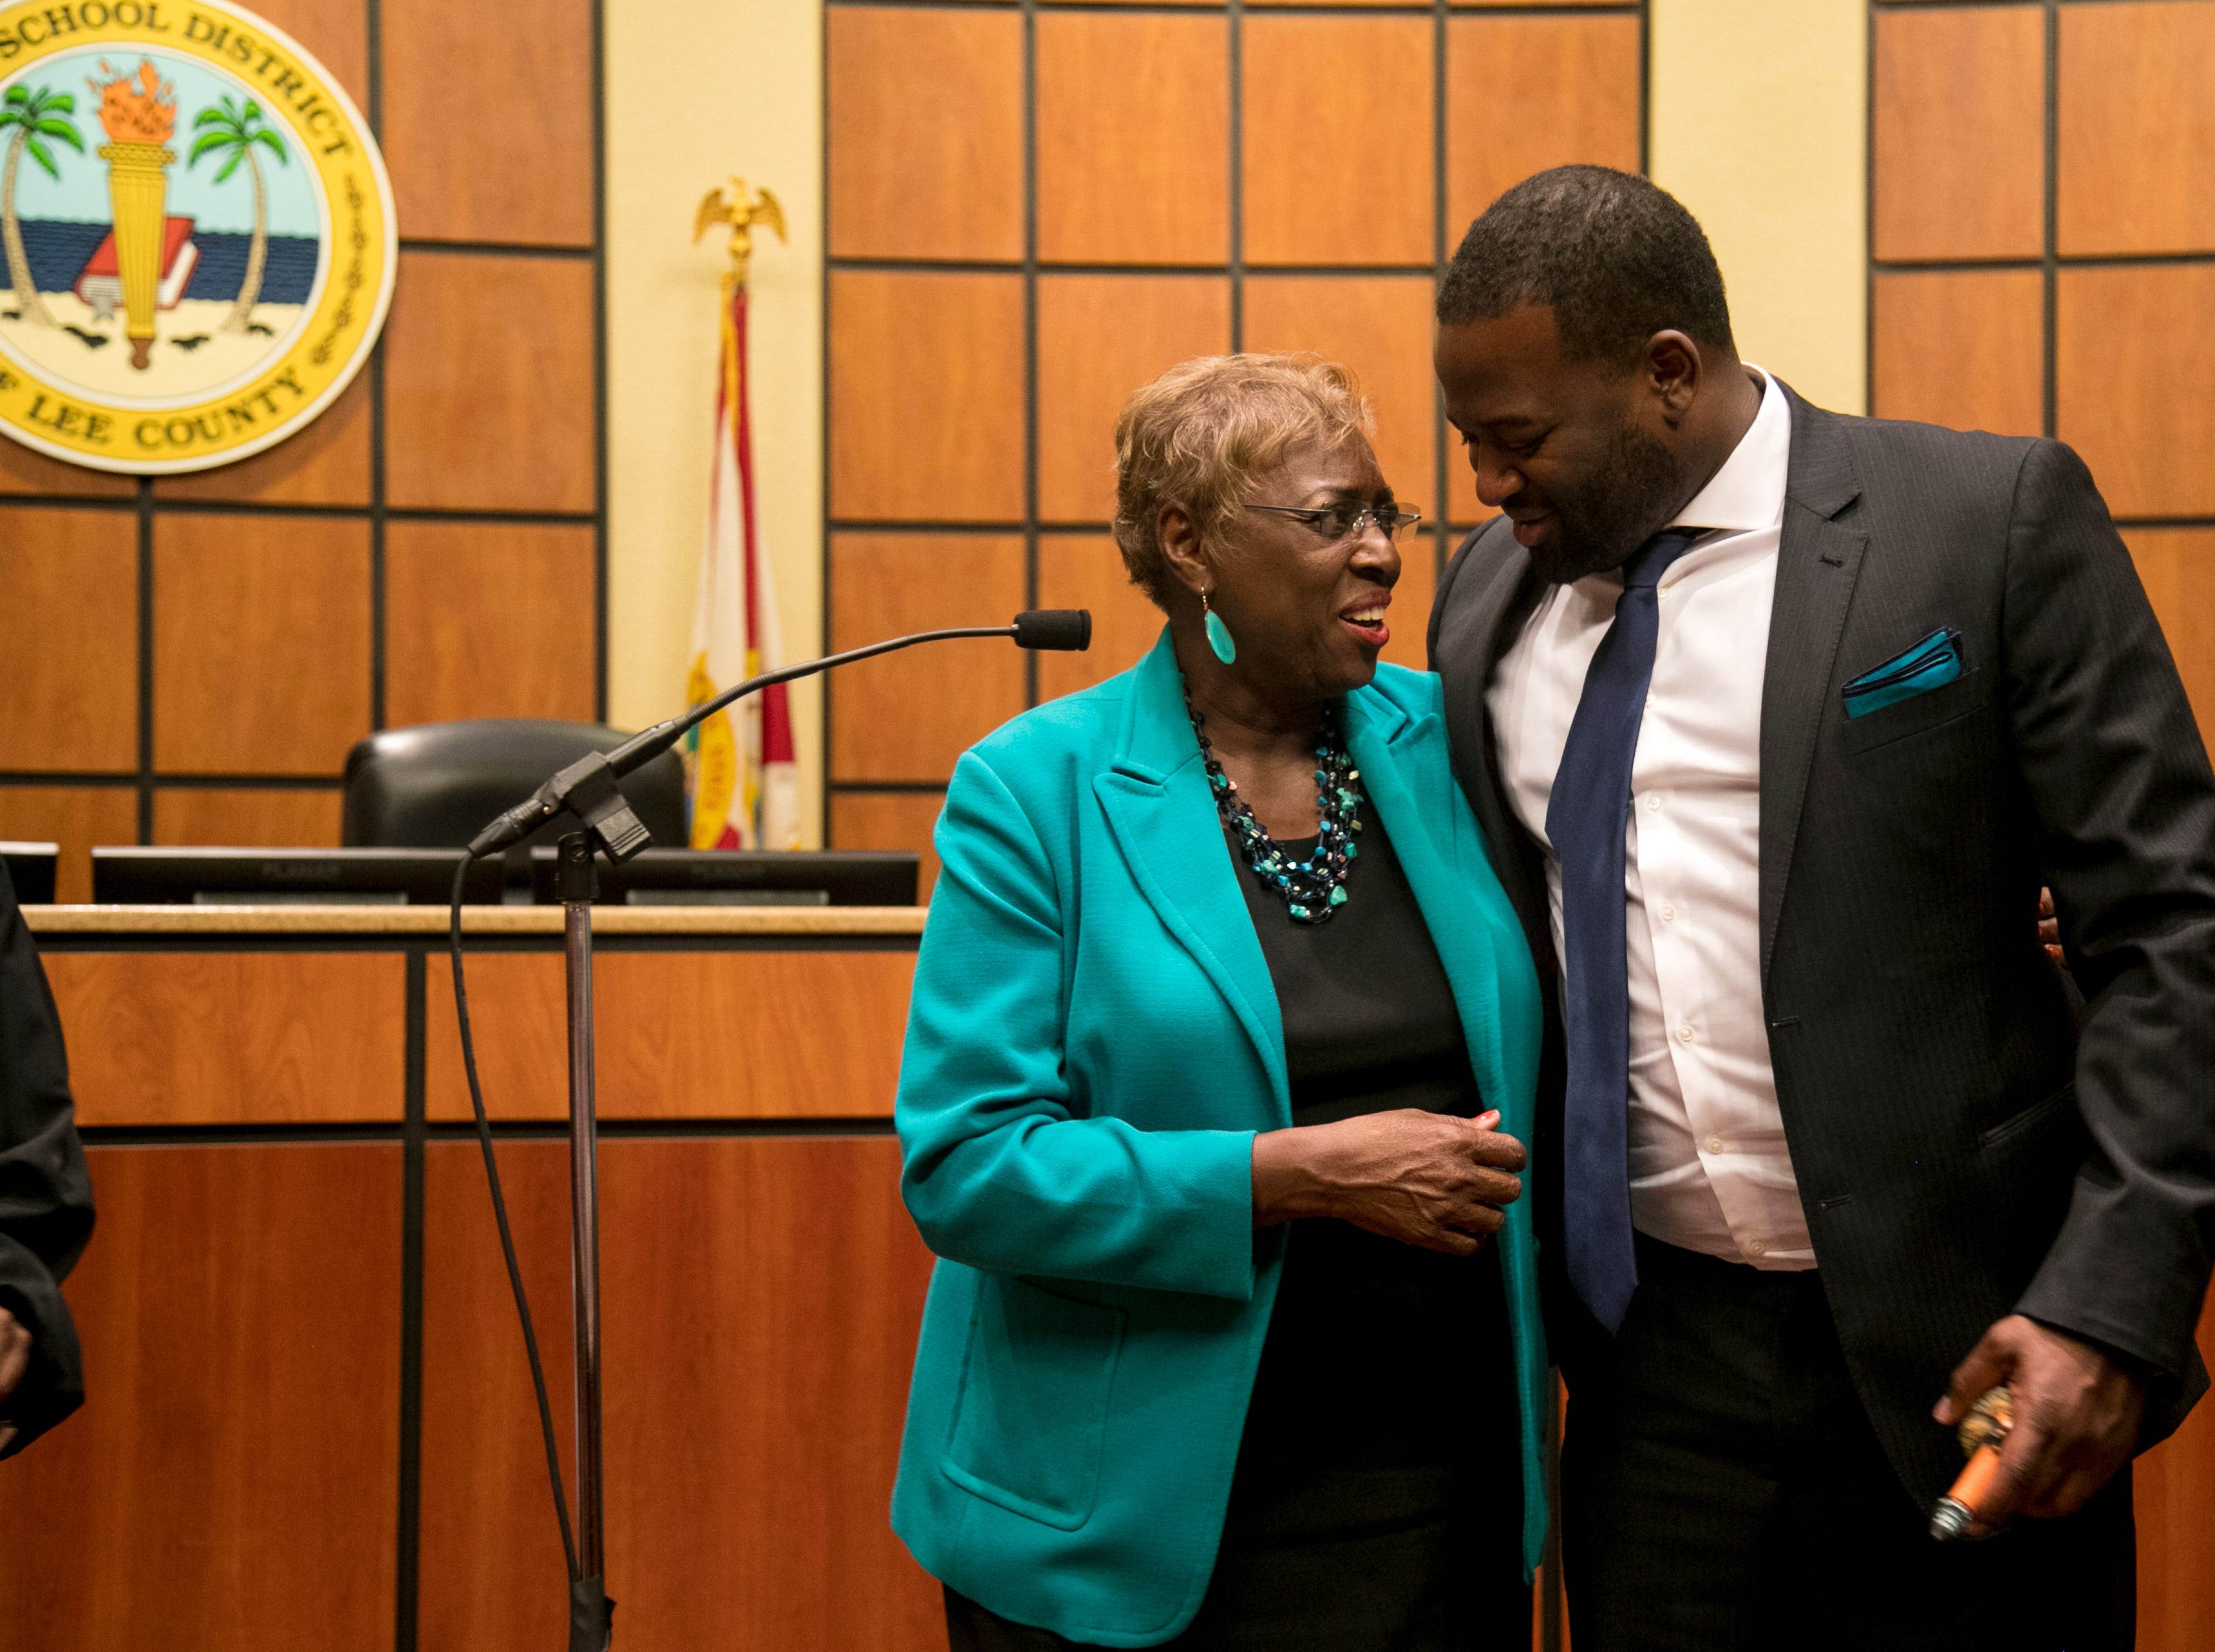 Gwyn Gittens gets a hug from her son Jonathan Sampson after taking her oath of office for the District 5 seat of the Lee County School Board on Tuesday, November 20, 2018, in Fort Myers.